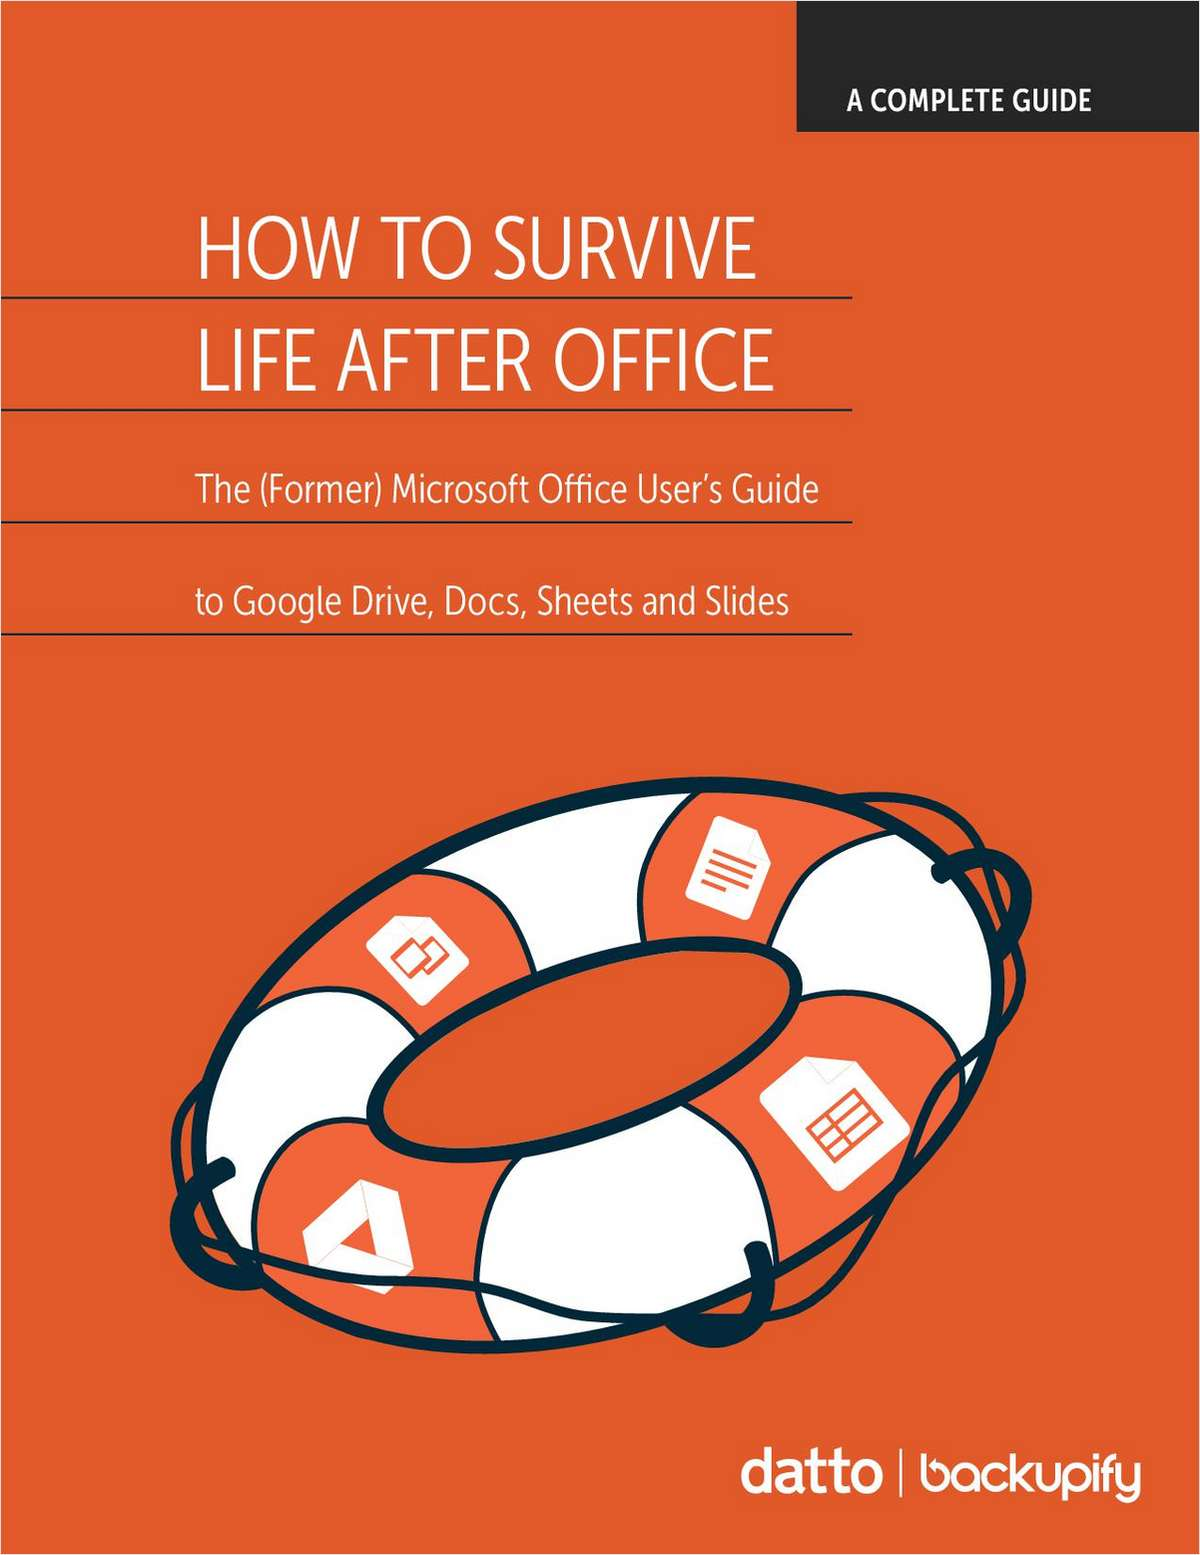 How To Survive Life After Office: The (Former) Microsoft Office User's Guide to Google Drive, Docs, Sheets and Slides